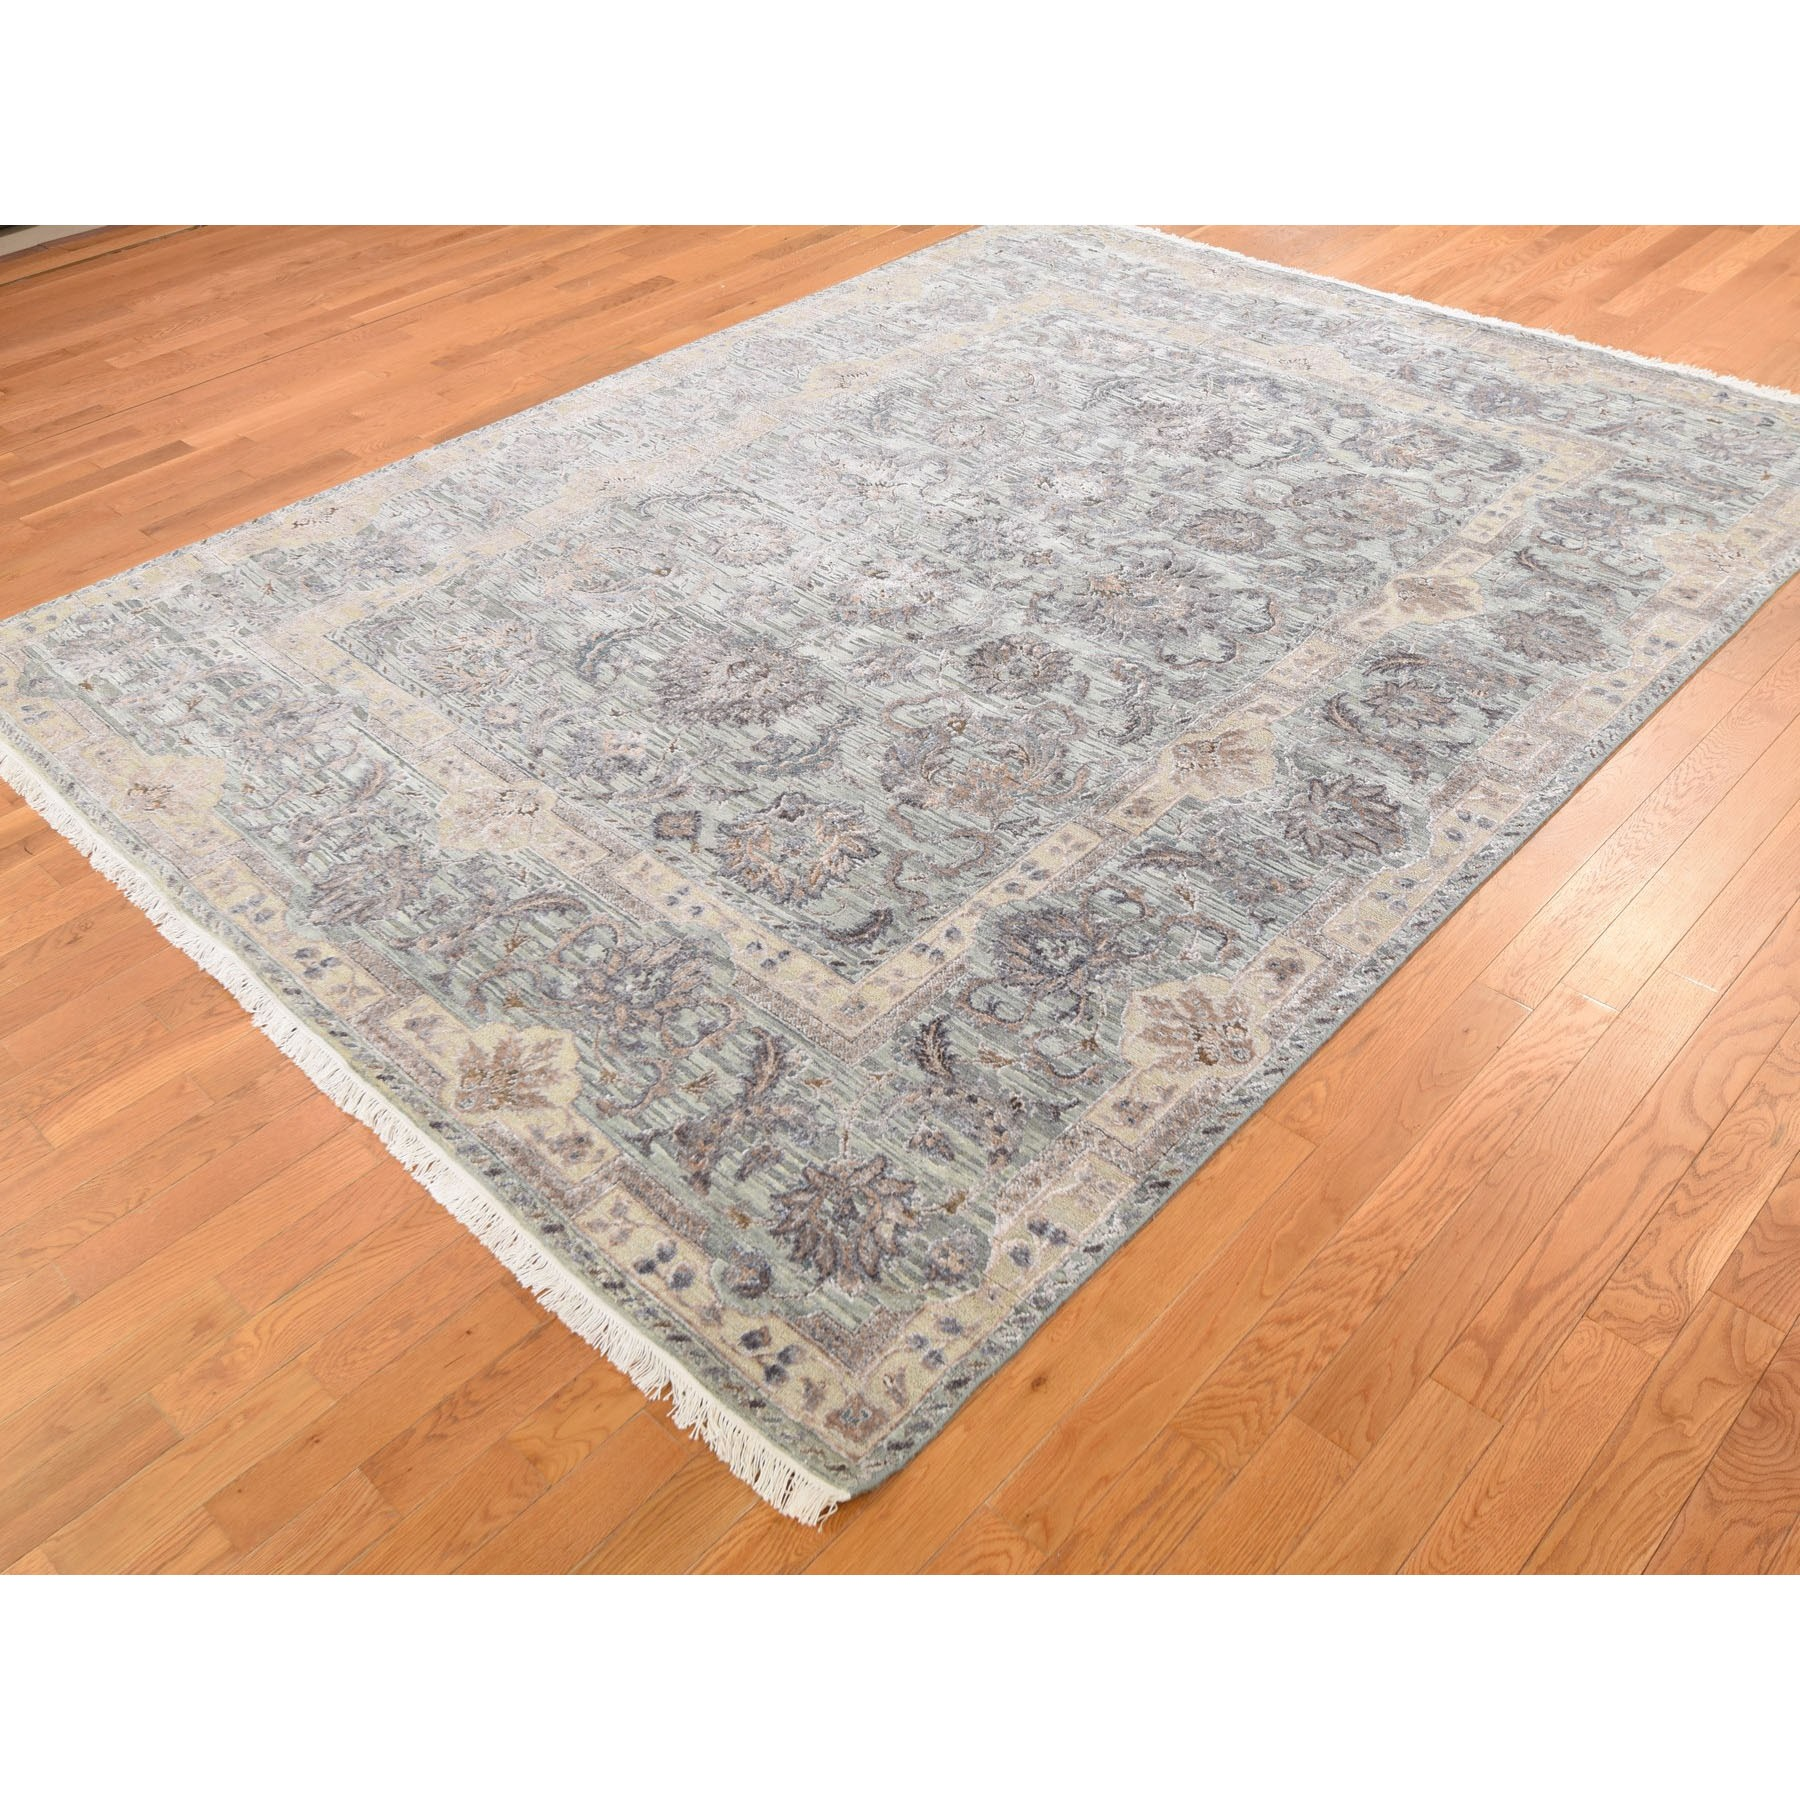 "7'10""x10' Light Green Pure Silk With Textured Wool Mughal Design Hand Knotted Oriental Rug"